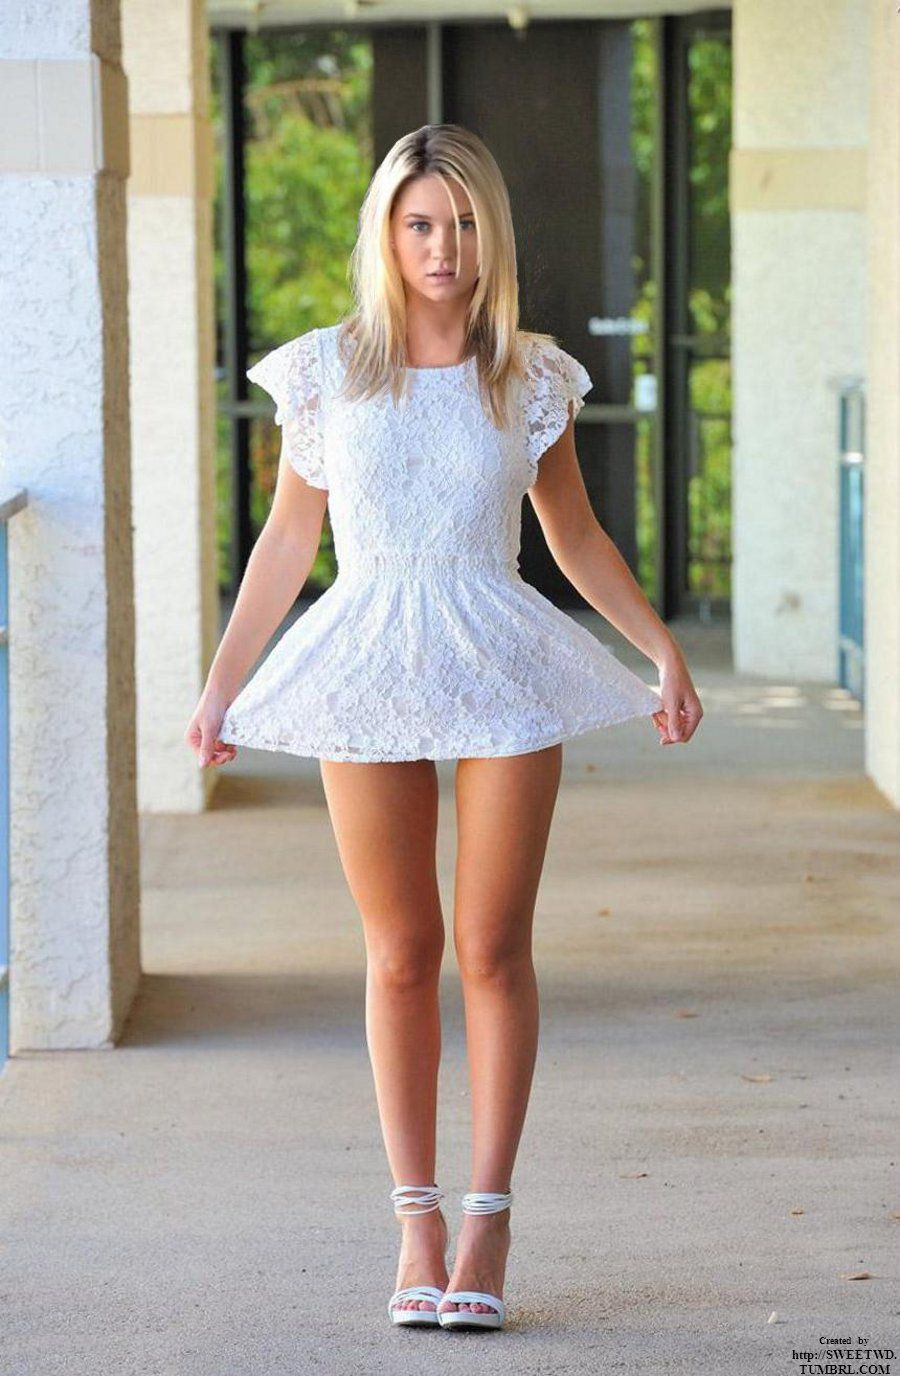 Hot teens in short skirts pics #5